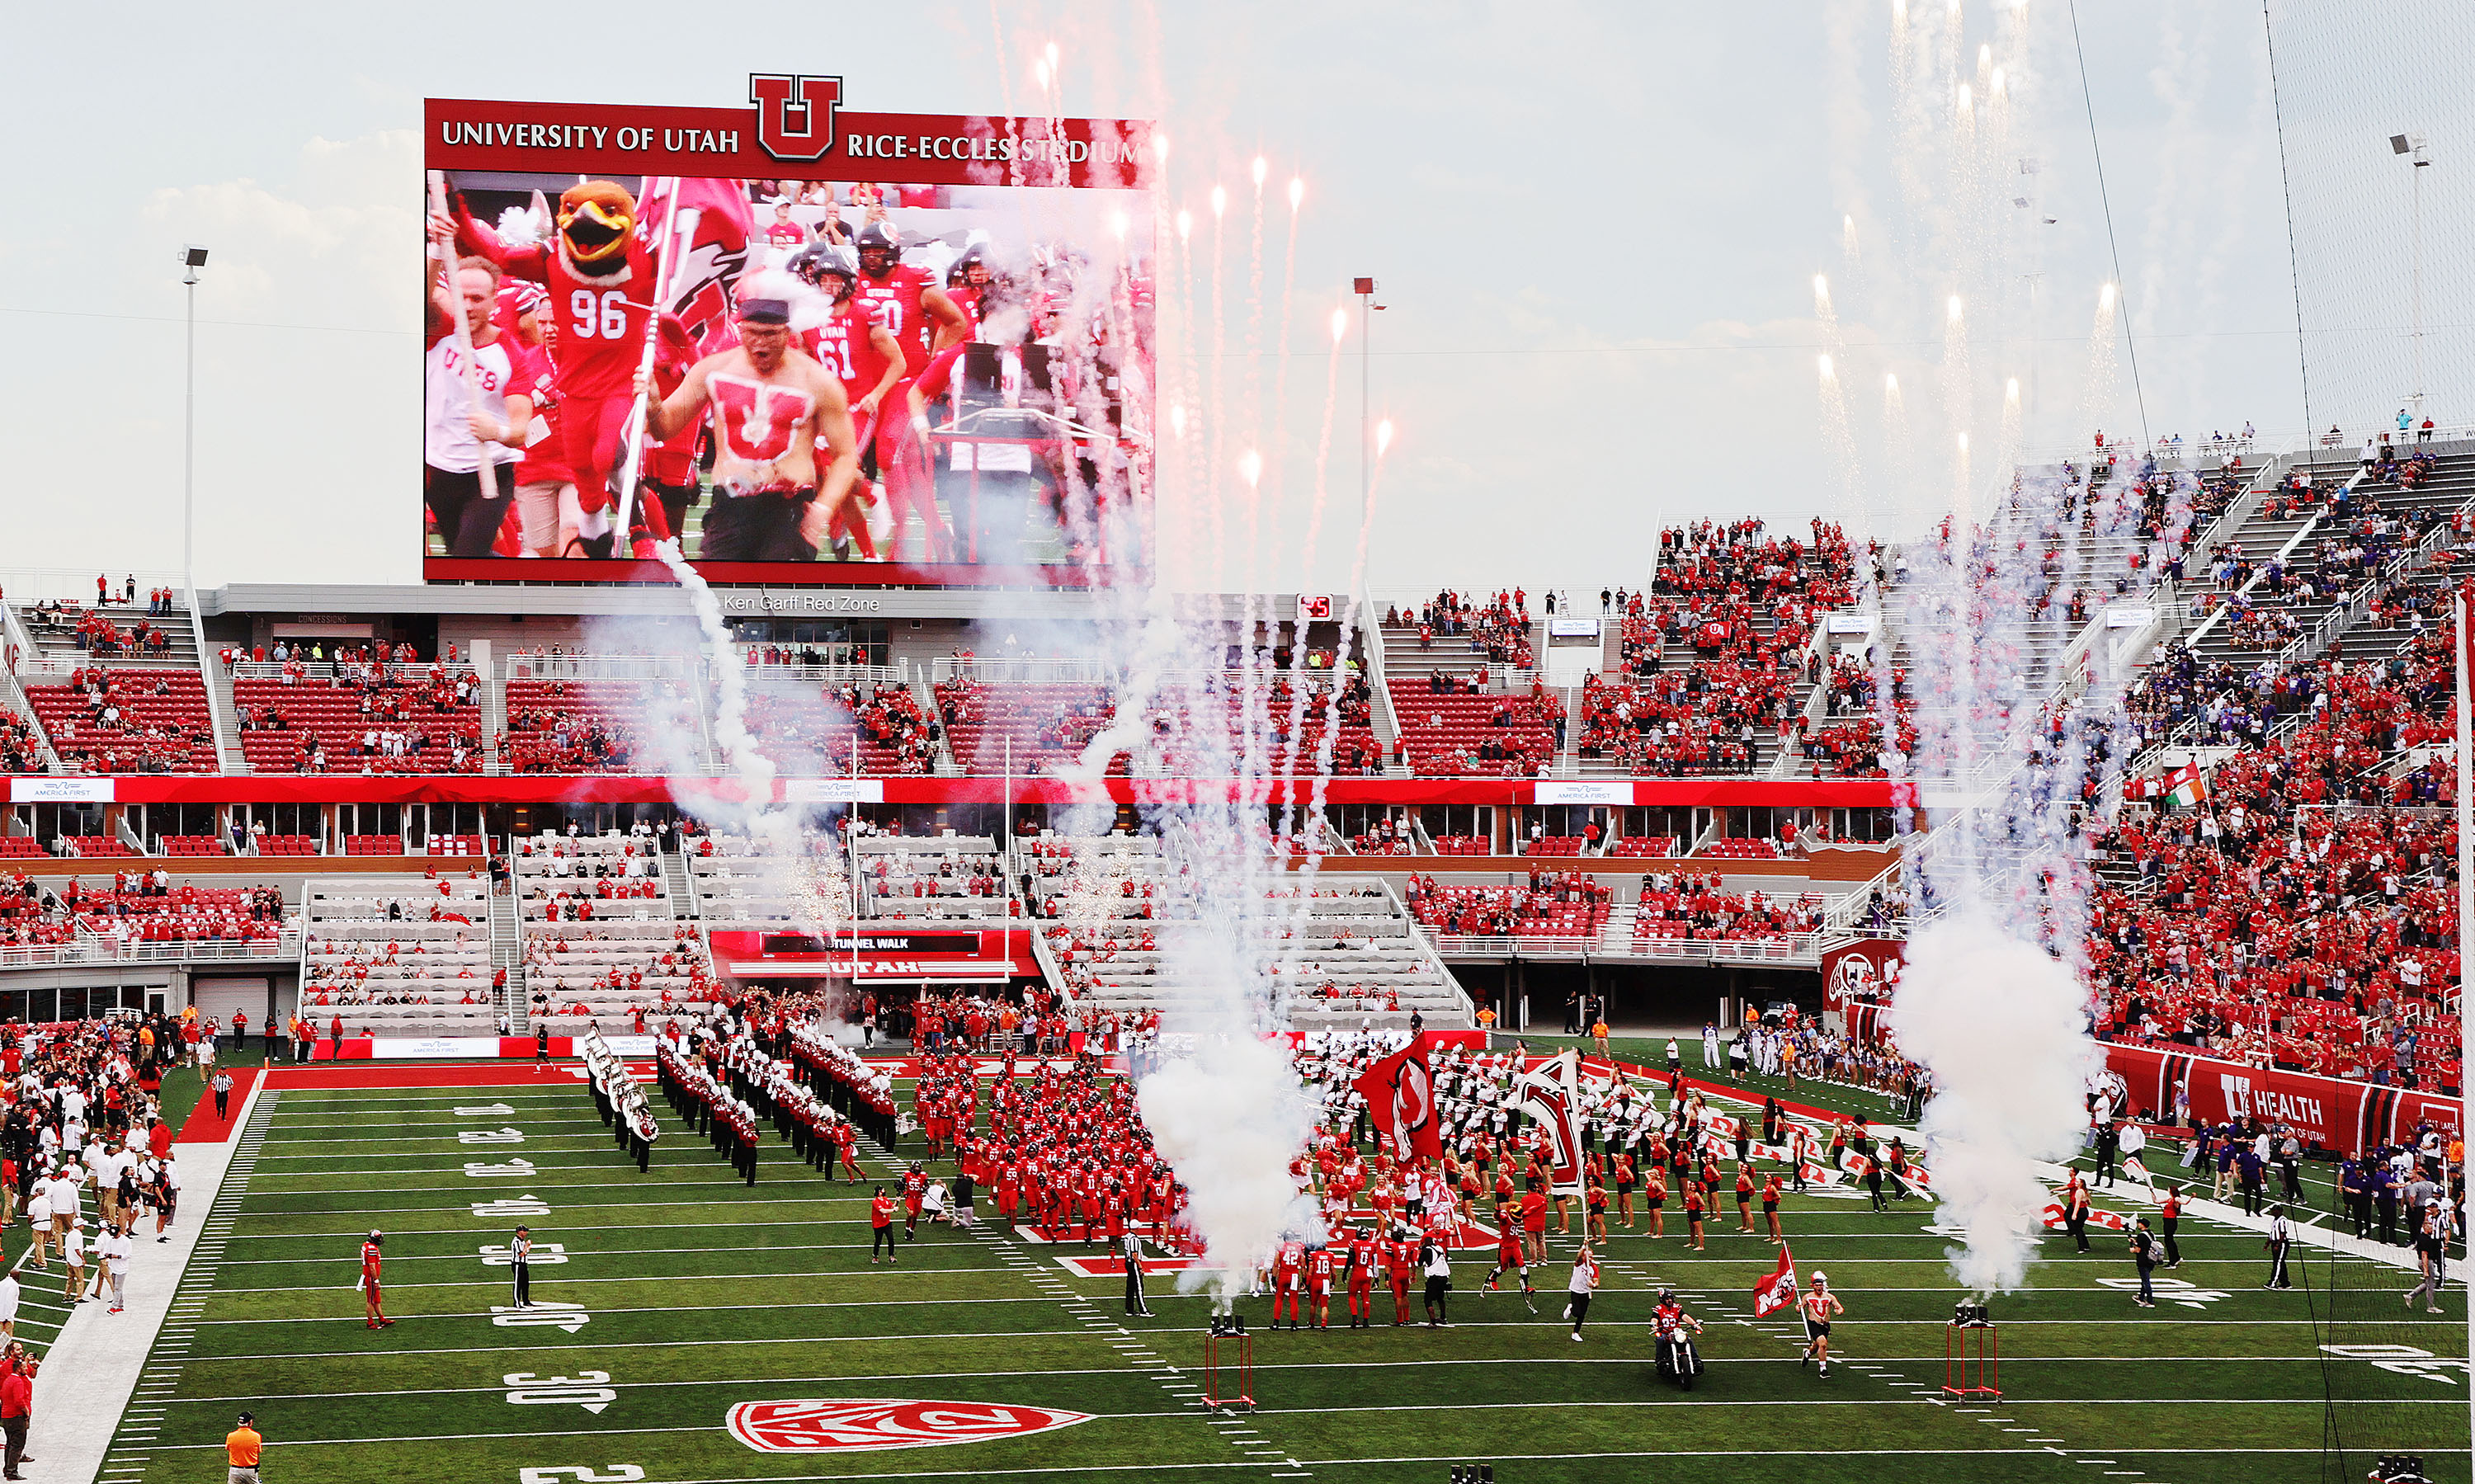 The Utes take the field at Rice-Eccles Stadium in Salt Lake City.